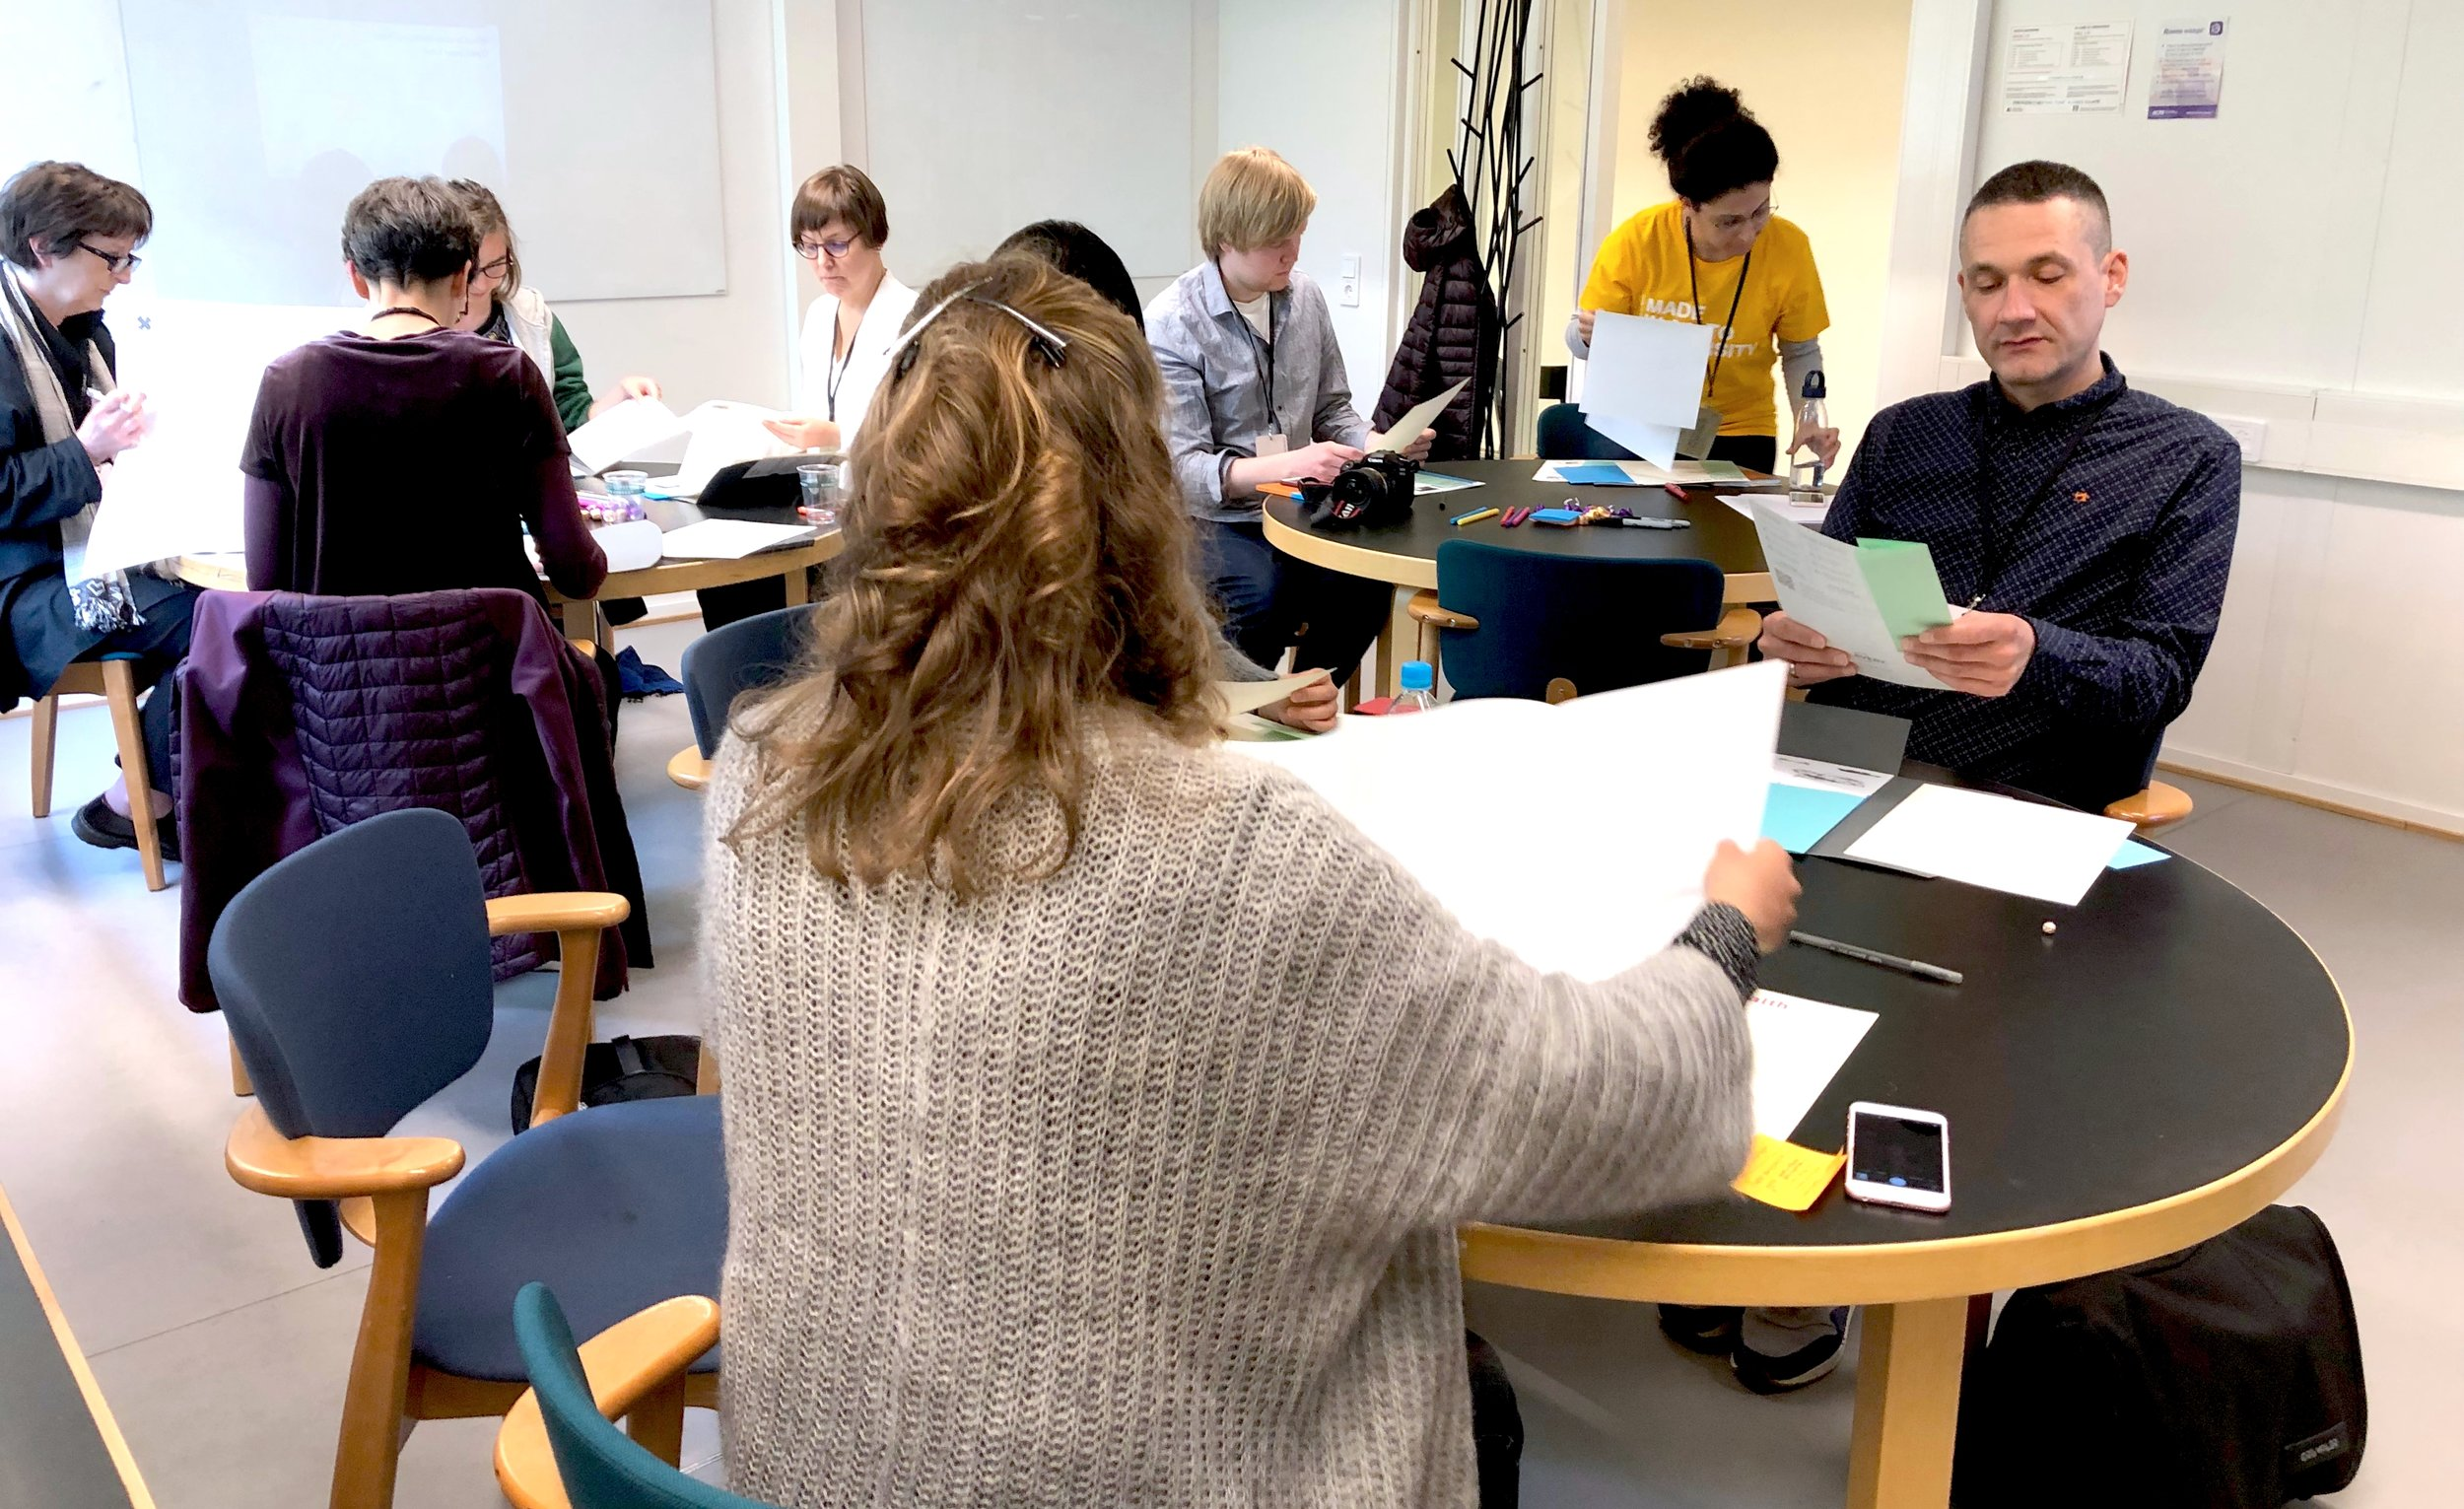 Participants join the workshop at Aalto University in Helsinki, Finland